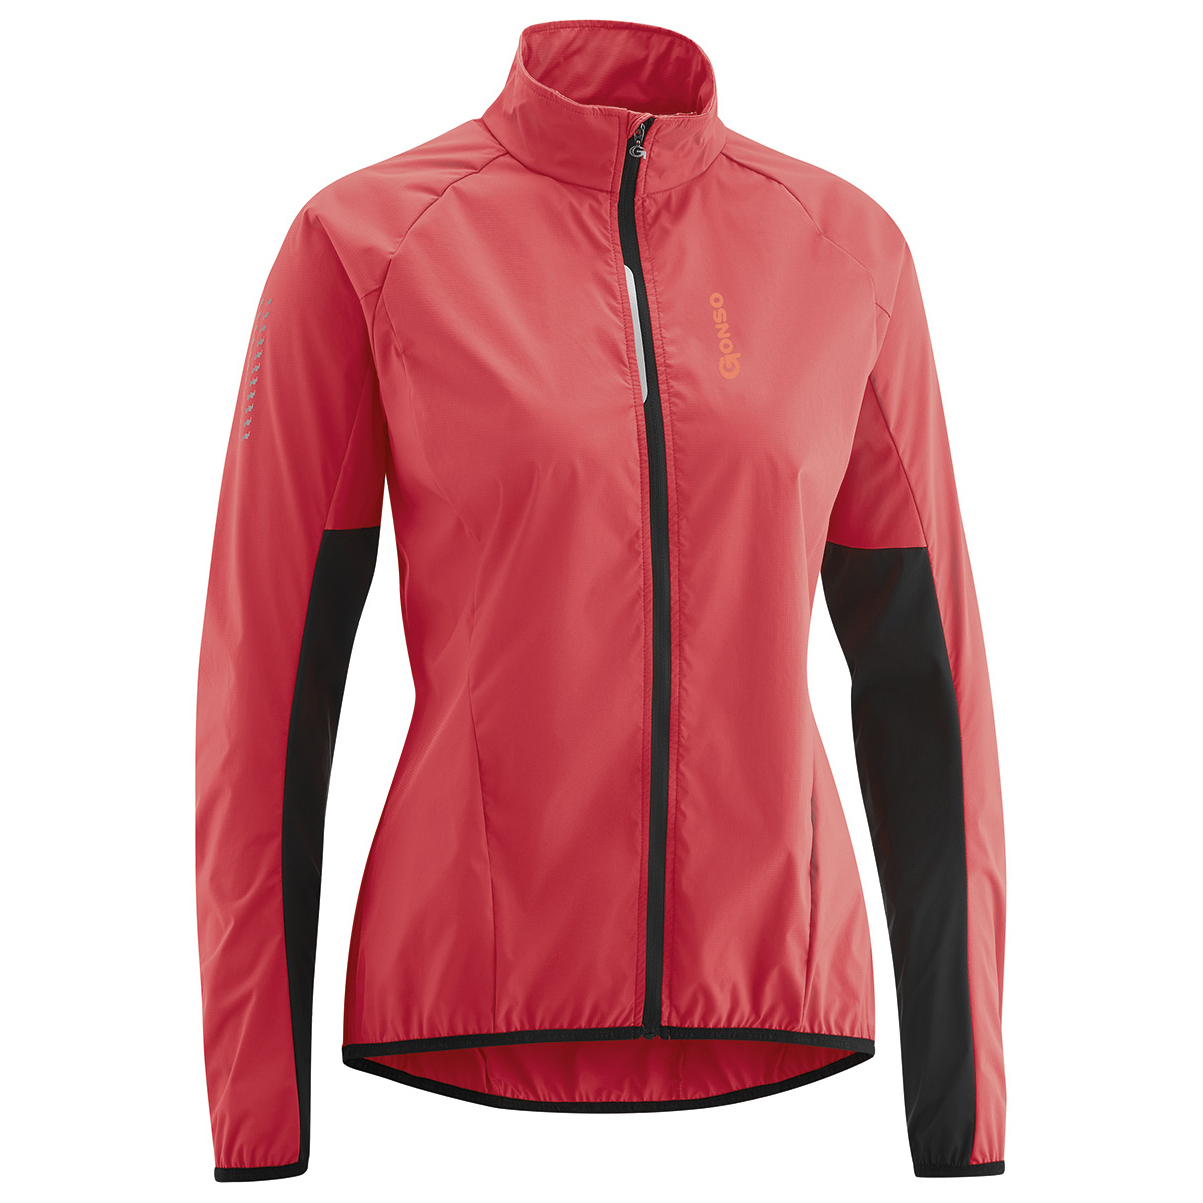 Gonso Spilit Cycling Jacket Women S Free Eu Delivery